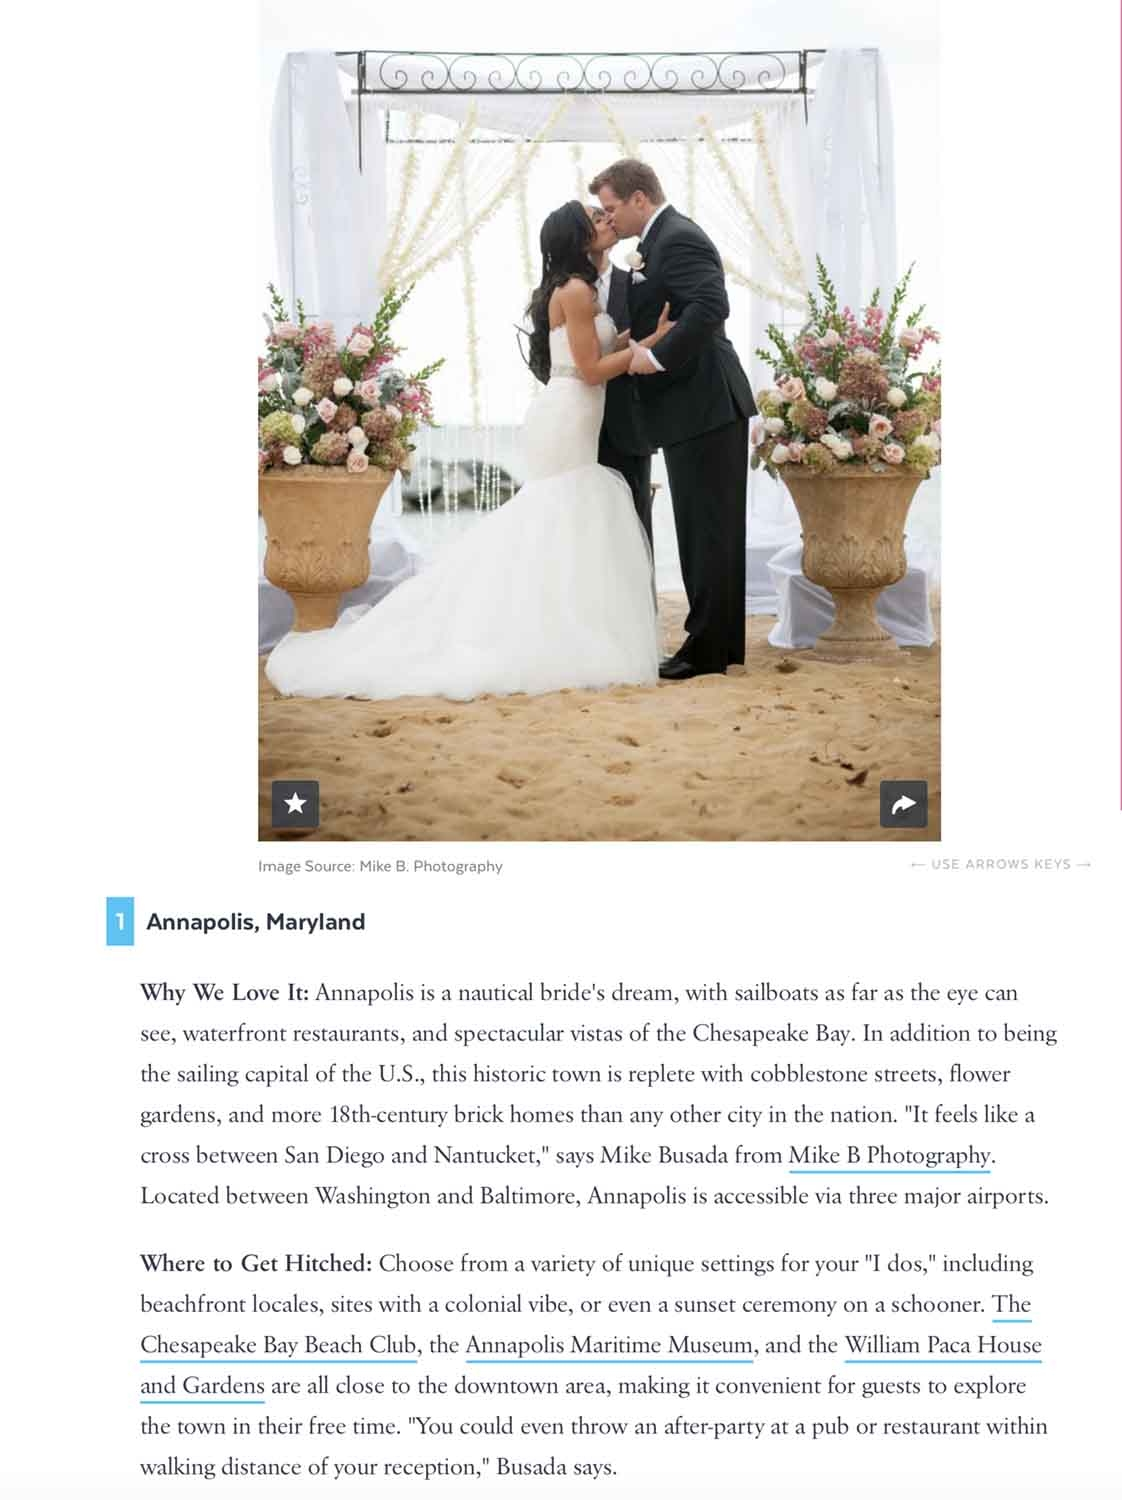 To read more about Under the Radar destination wedding locations, click on the image above!